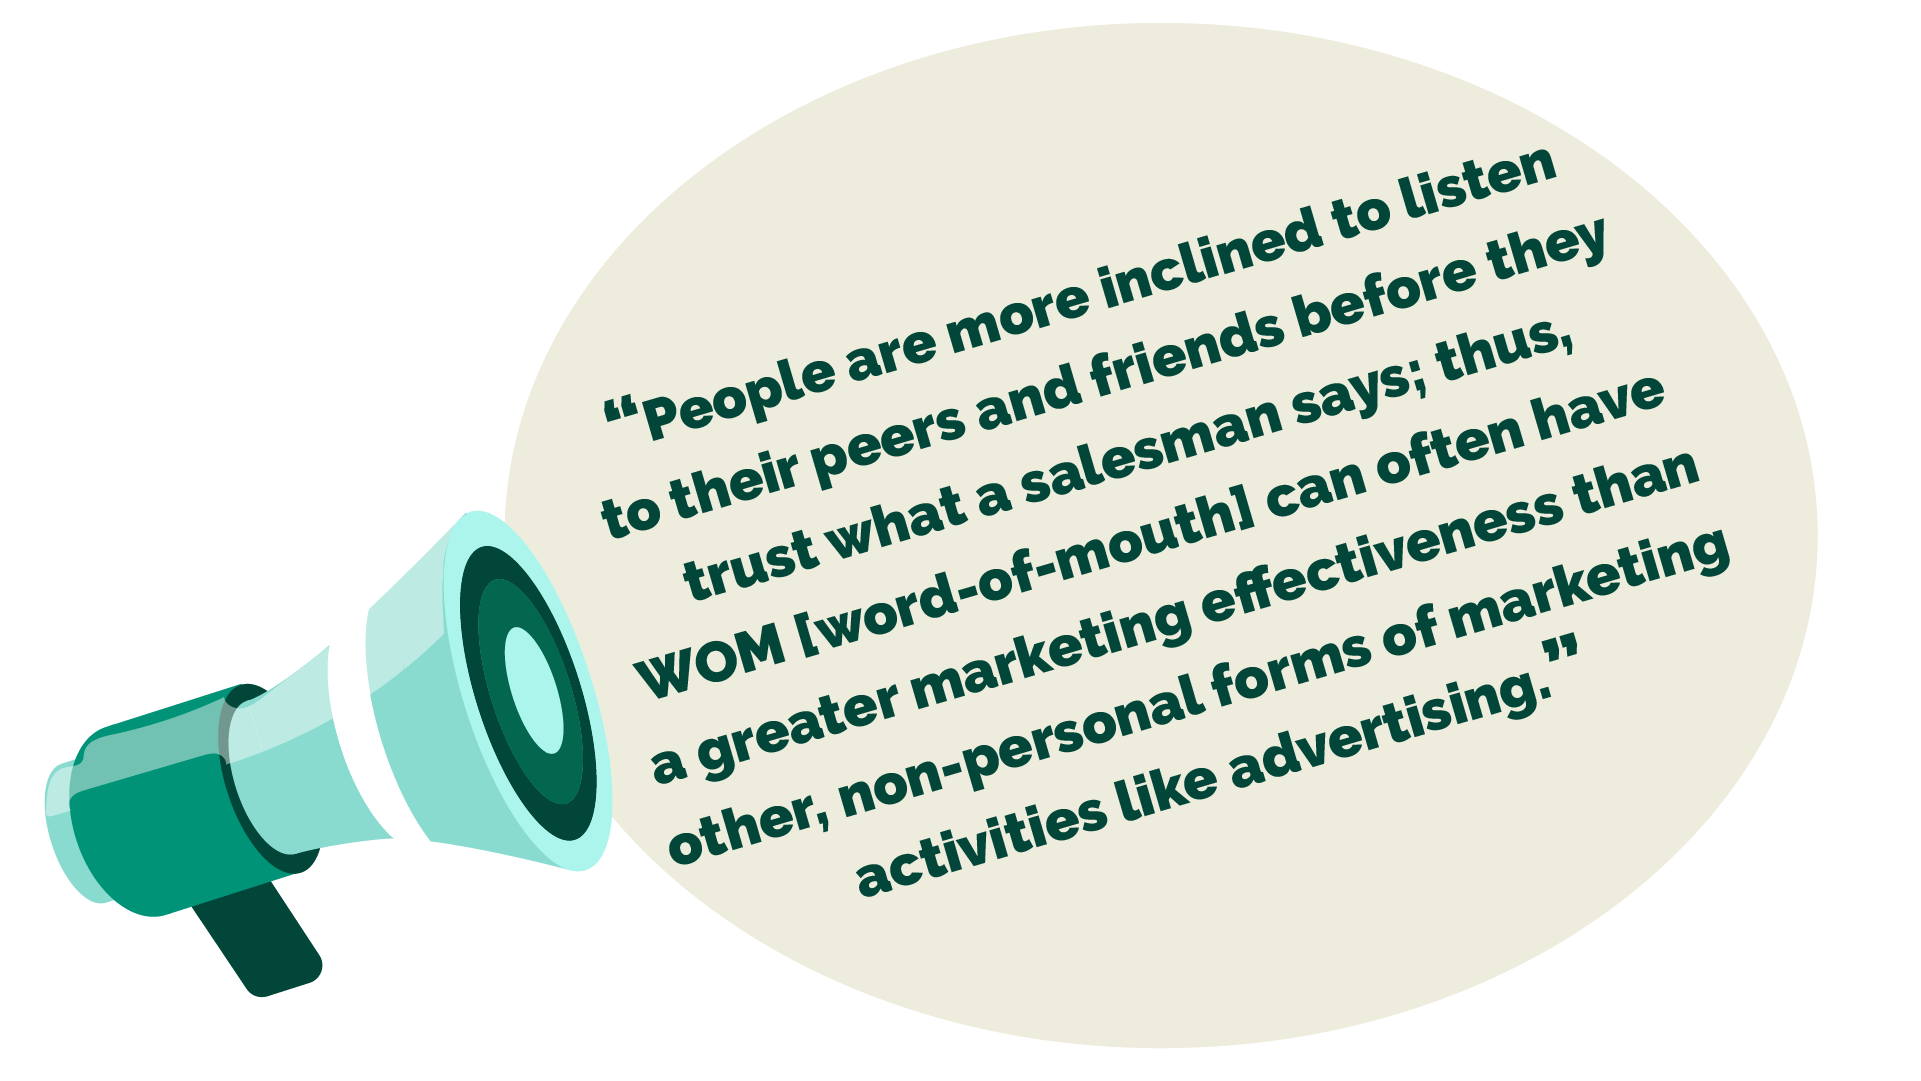 """Quote: """"People are more inclined to listen to their peers and friends before they trust what a salesman says; thus, WOM [word-of-mouth] can often have a greater marketing effectiveness than other, non-personal forms of marketing activities like advertising."""""""